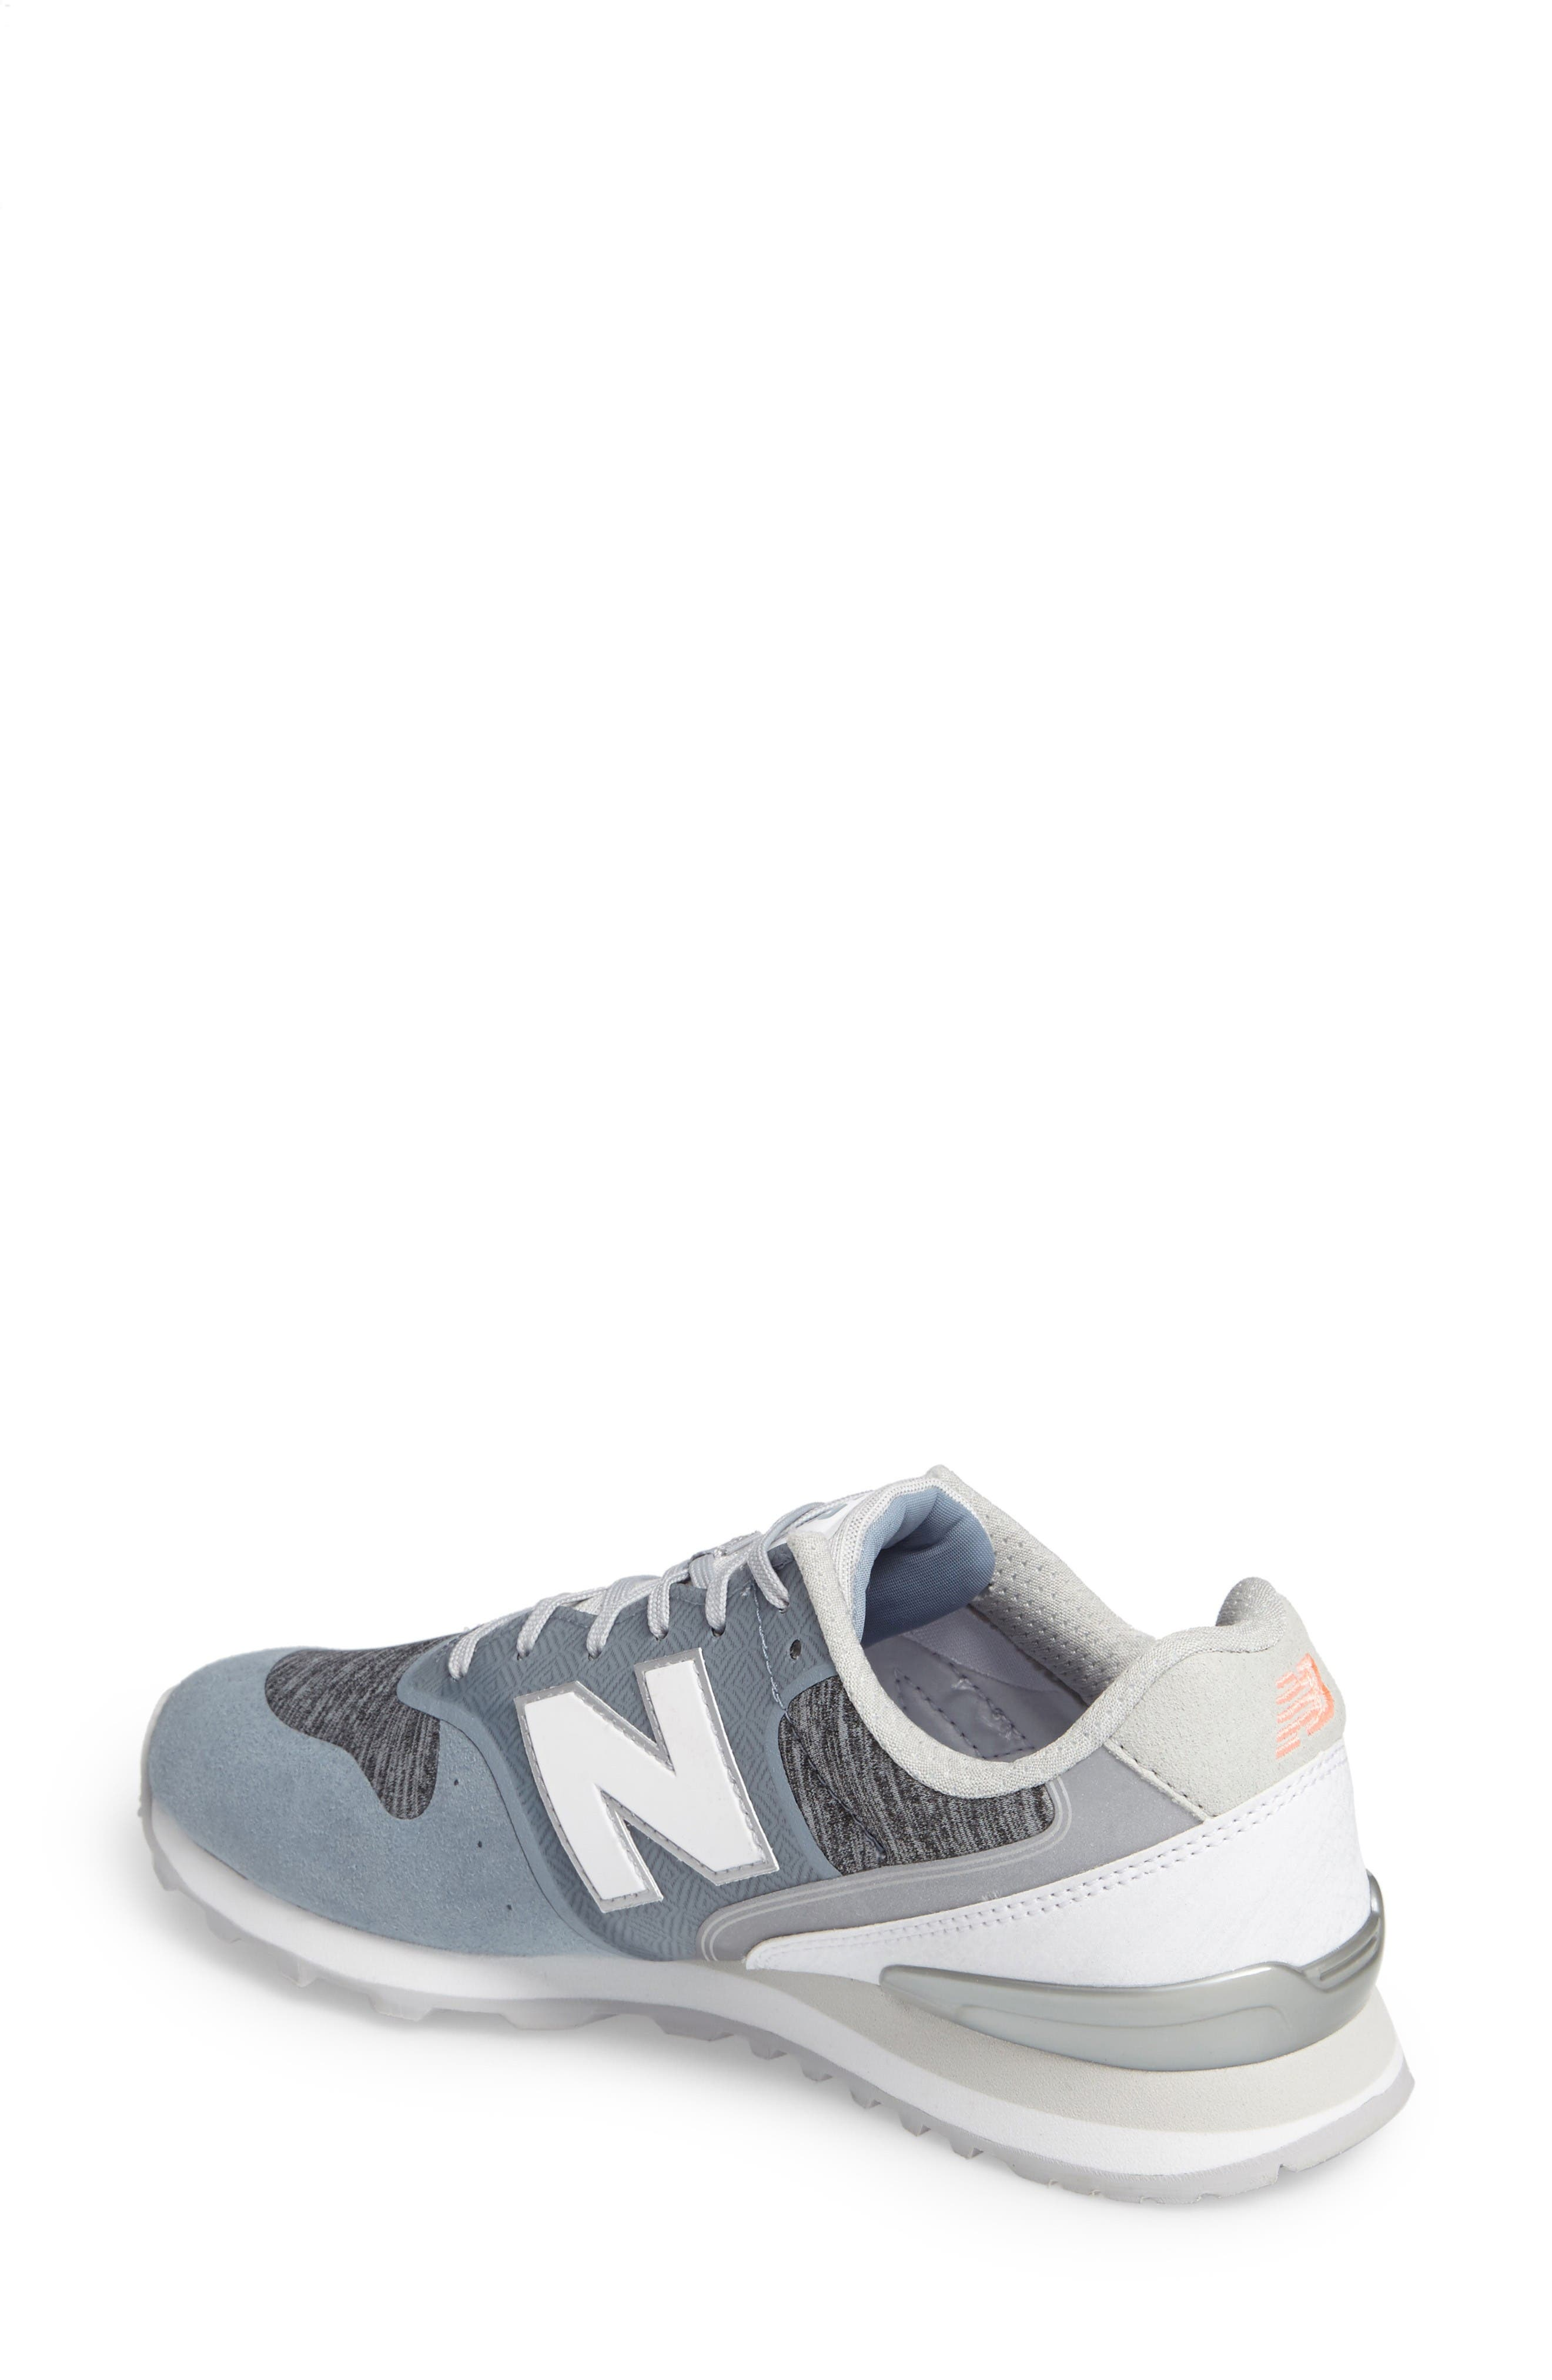 Alternate Image 2  - New Balance 696 Re-Engineered Sneaker (Women)